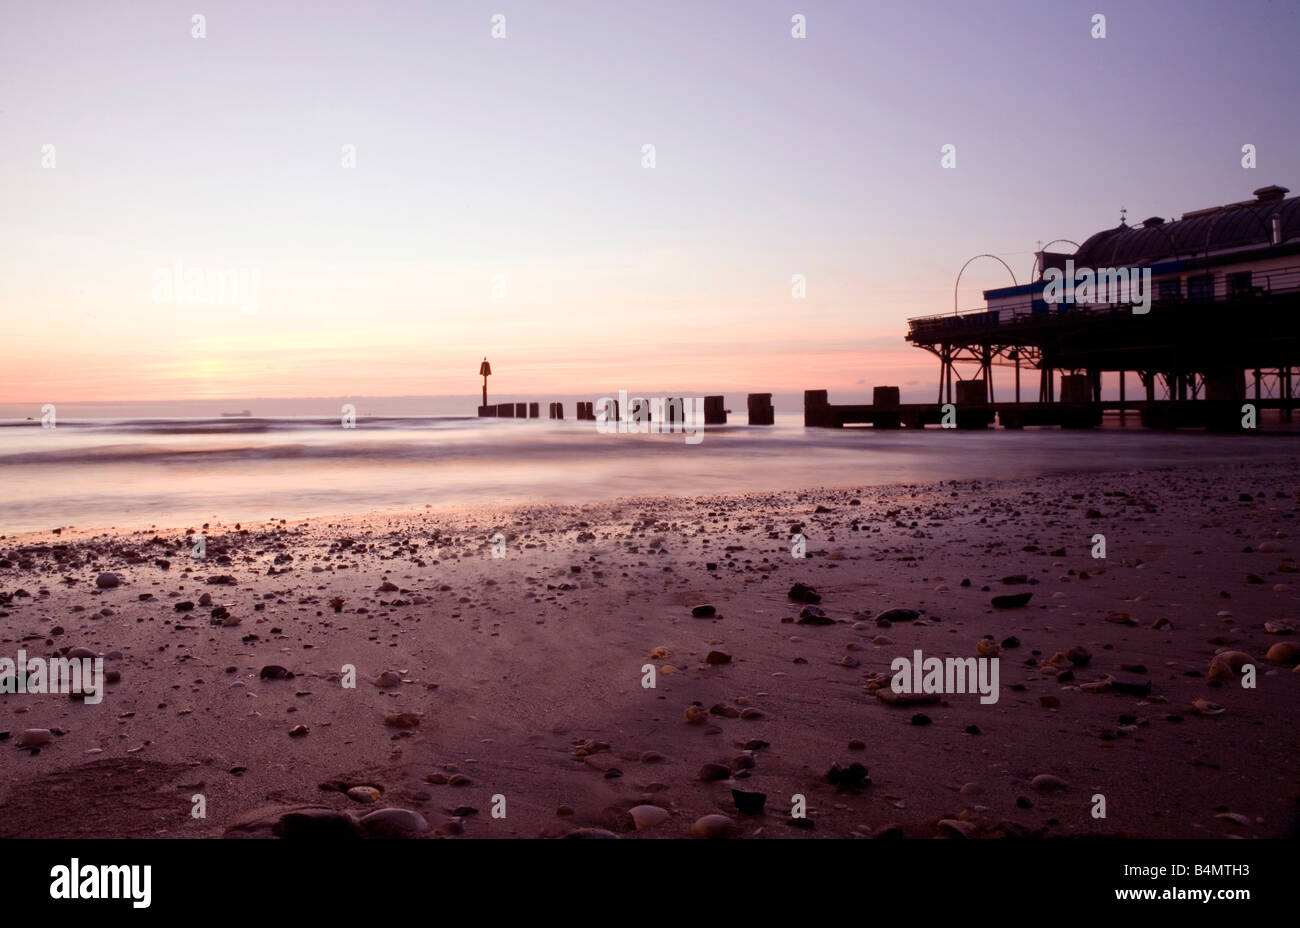 Sunrise on Cleethorpes beach with pier and beach in view in humberside near Grimsby south north east Lincolnshire - Stock Image